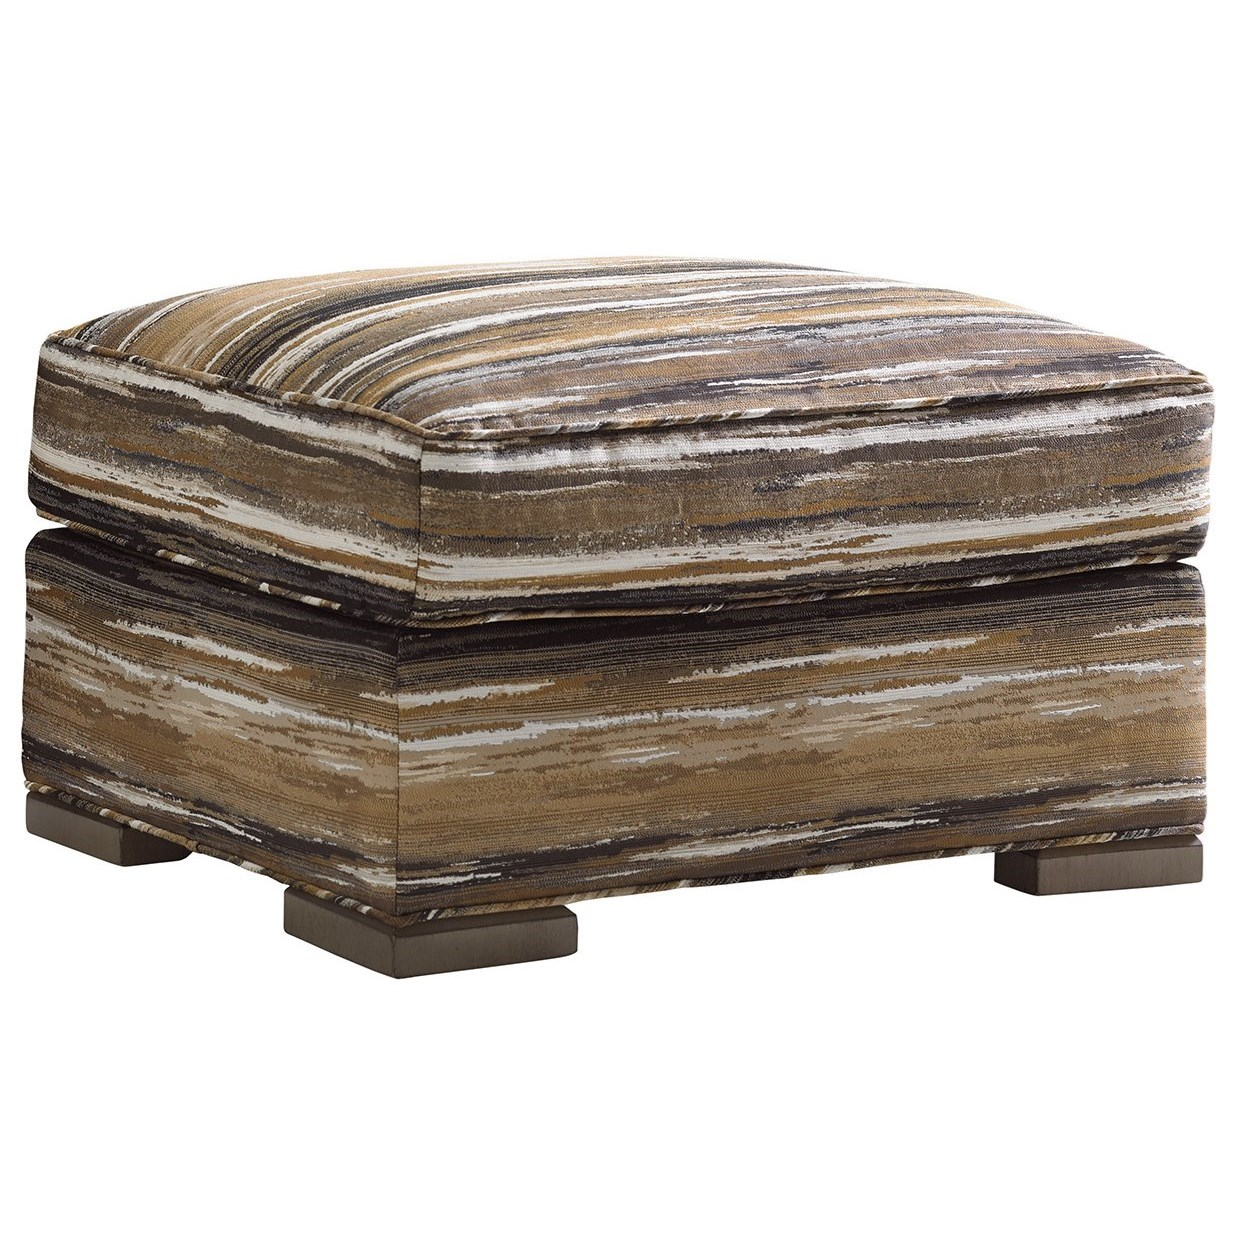 Shadow Play Delshire Ottoman by Lexington at Jacksonville Furniture Mart